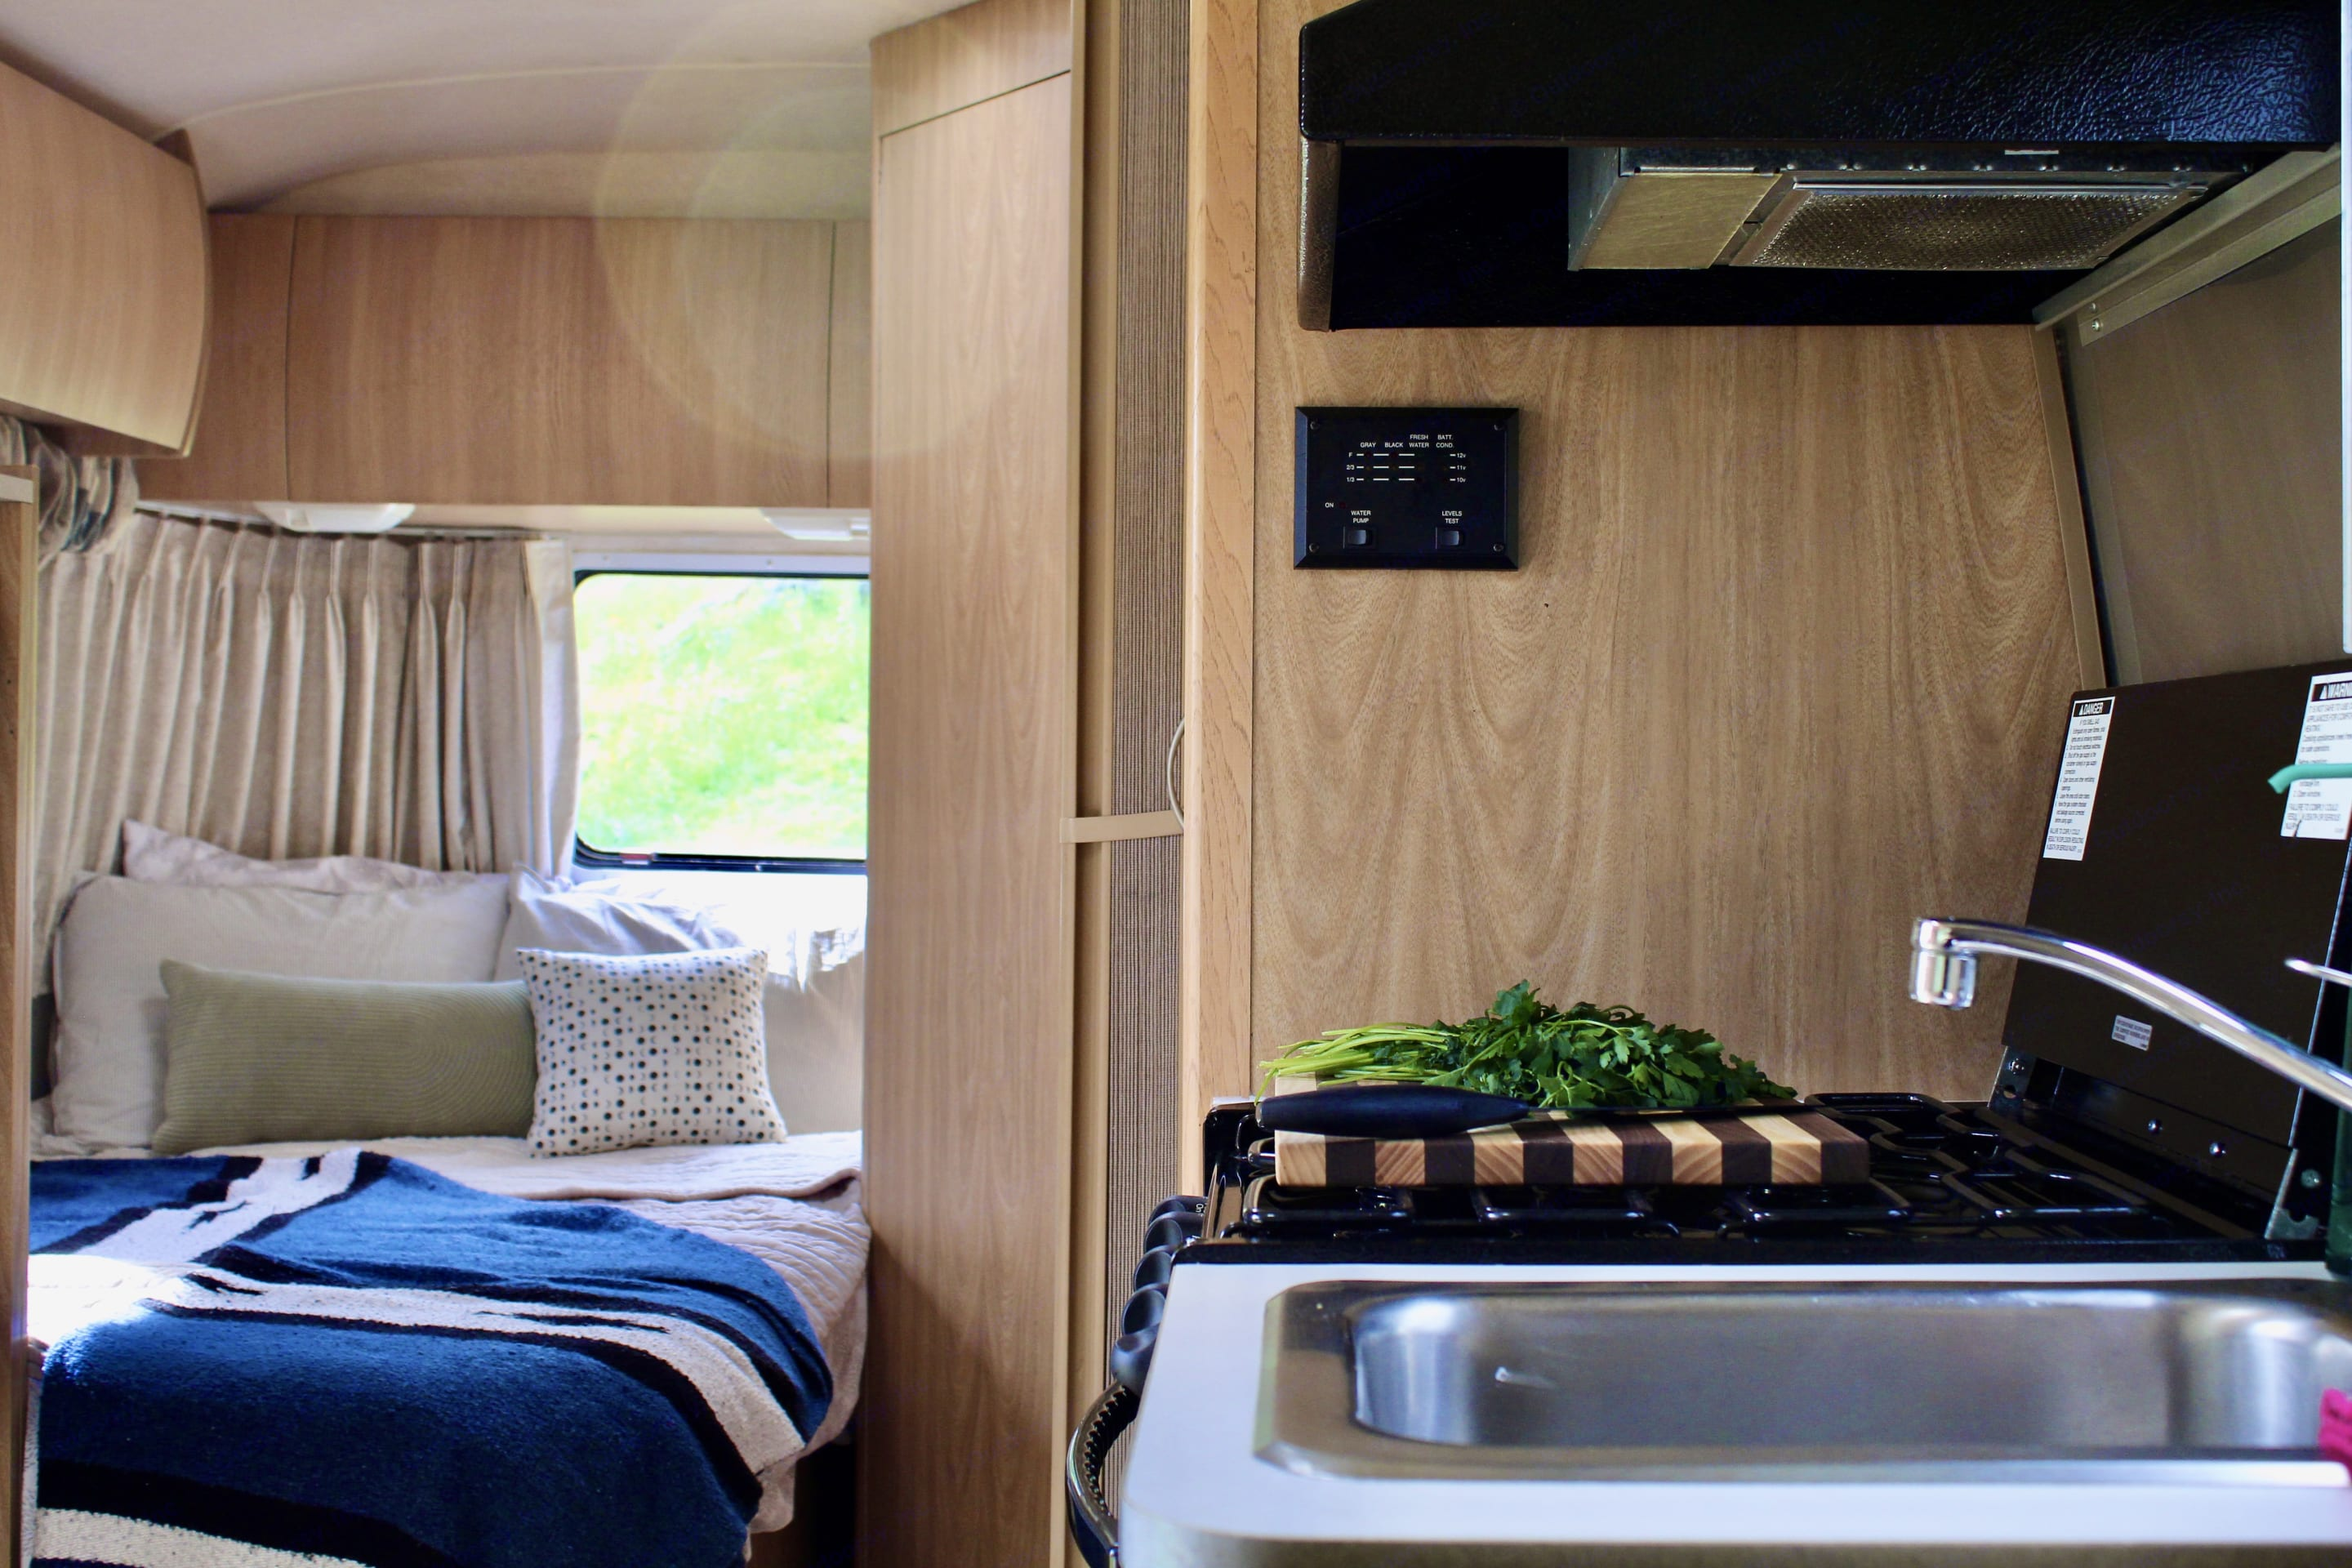 View of the kitchen, bed, and bathroom from the dining table. Airstream Safari Bambi 2003